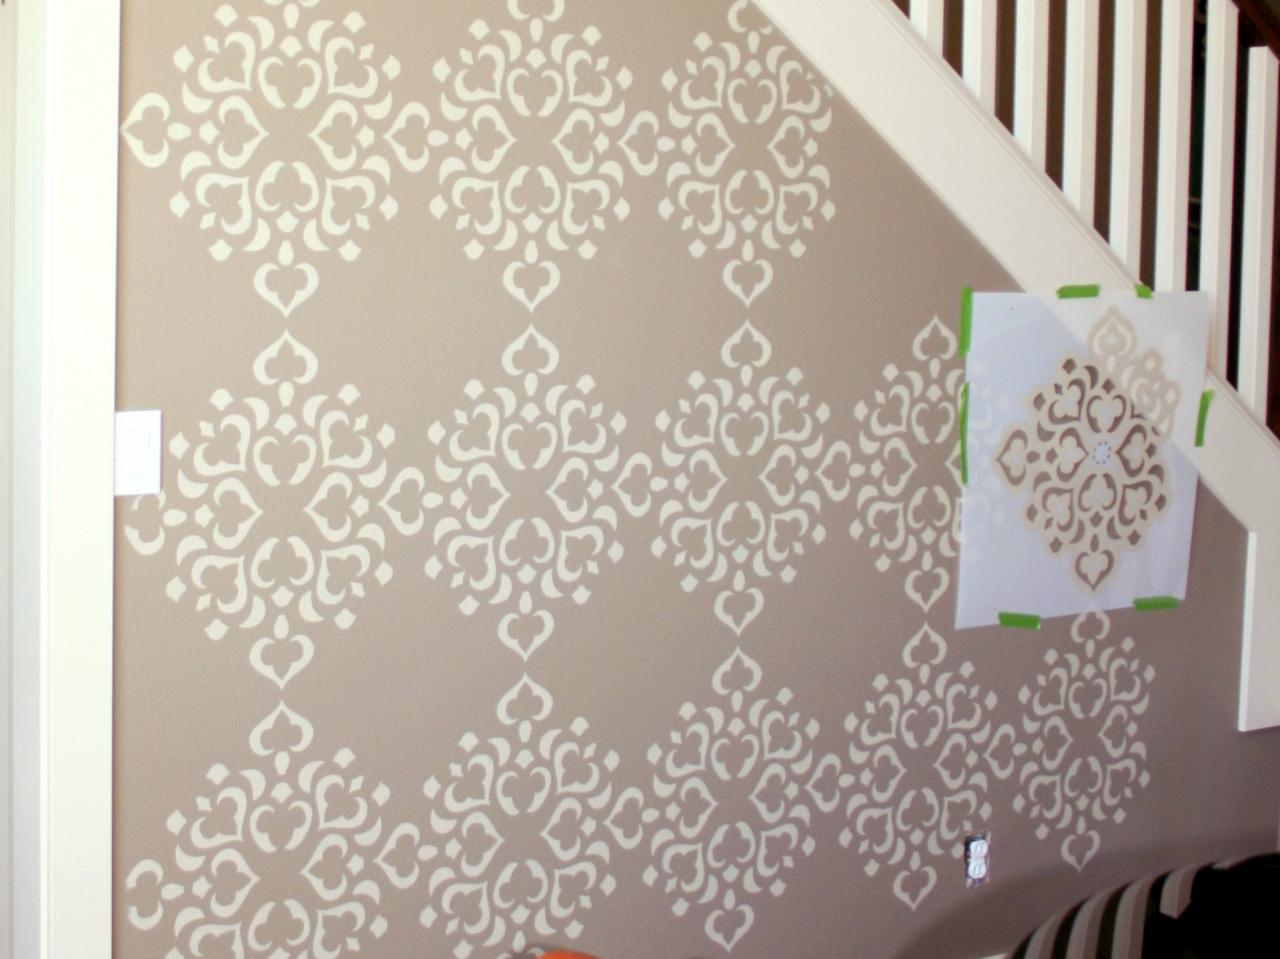 Give your home a dramatic look with the help of wall stencils